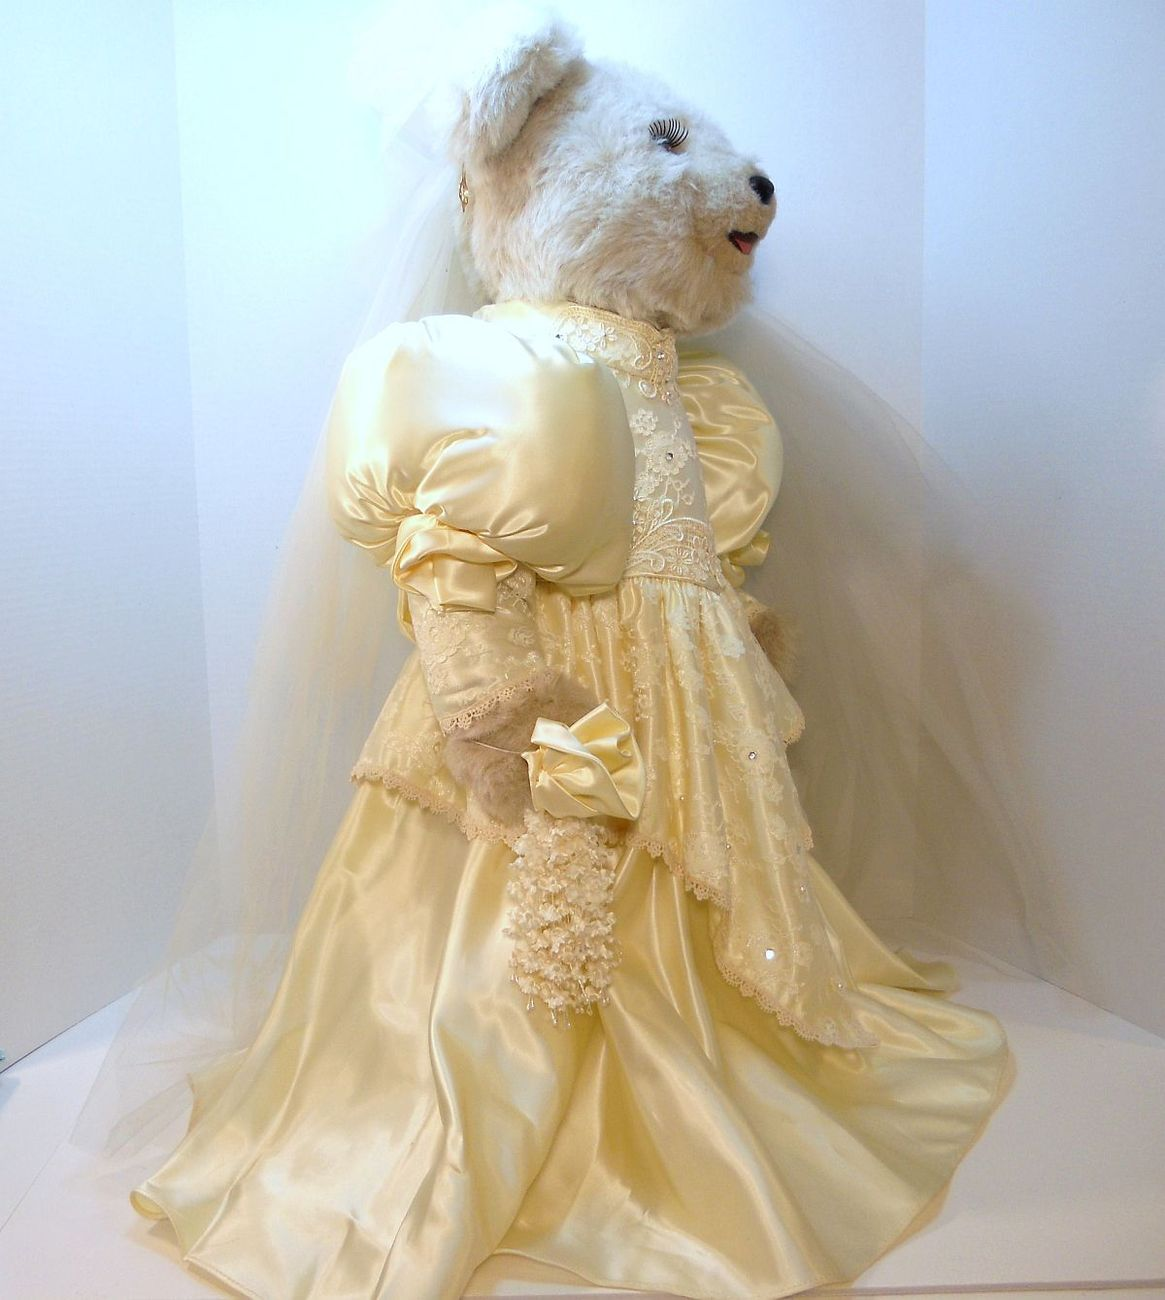 Image 1 of Tilly Collectibles Princess Nicole Wedding Bear 1990 QVC